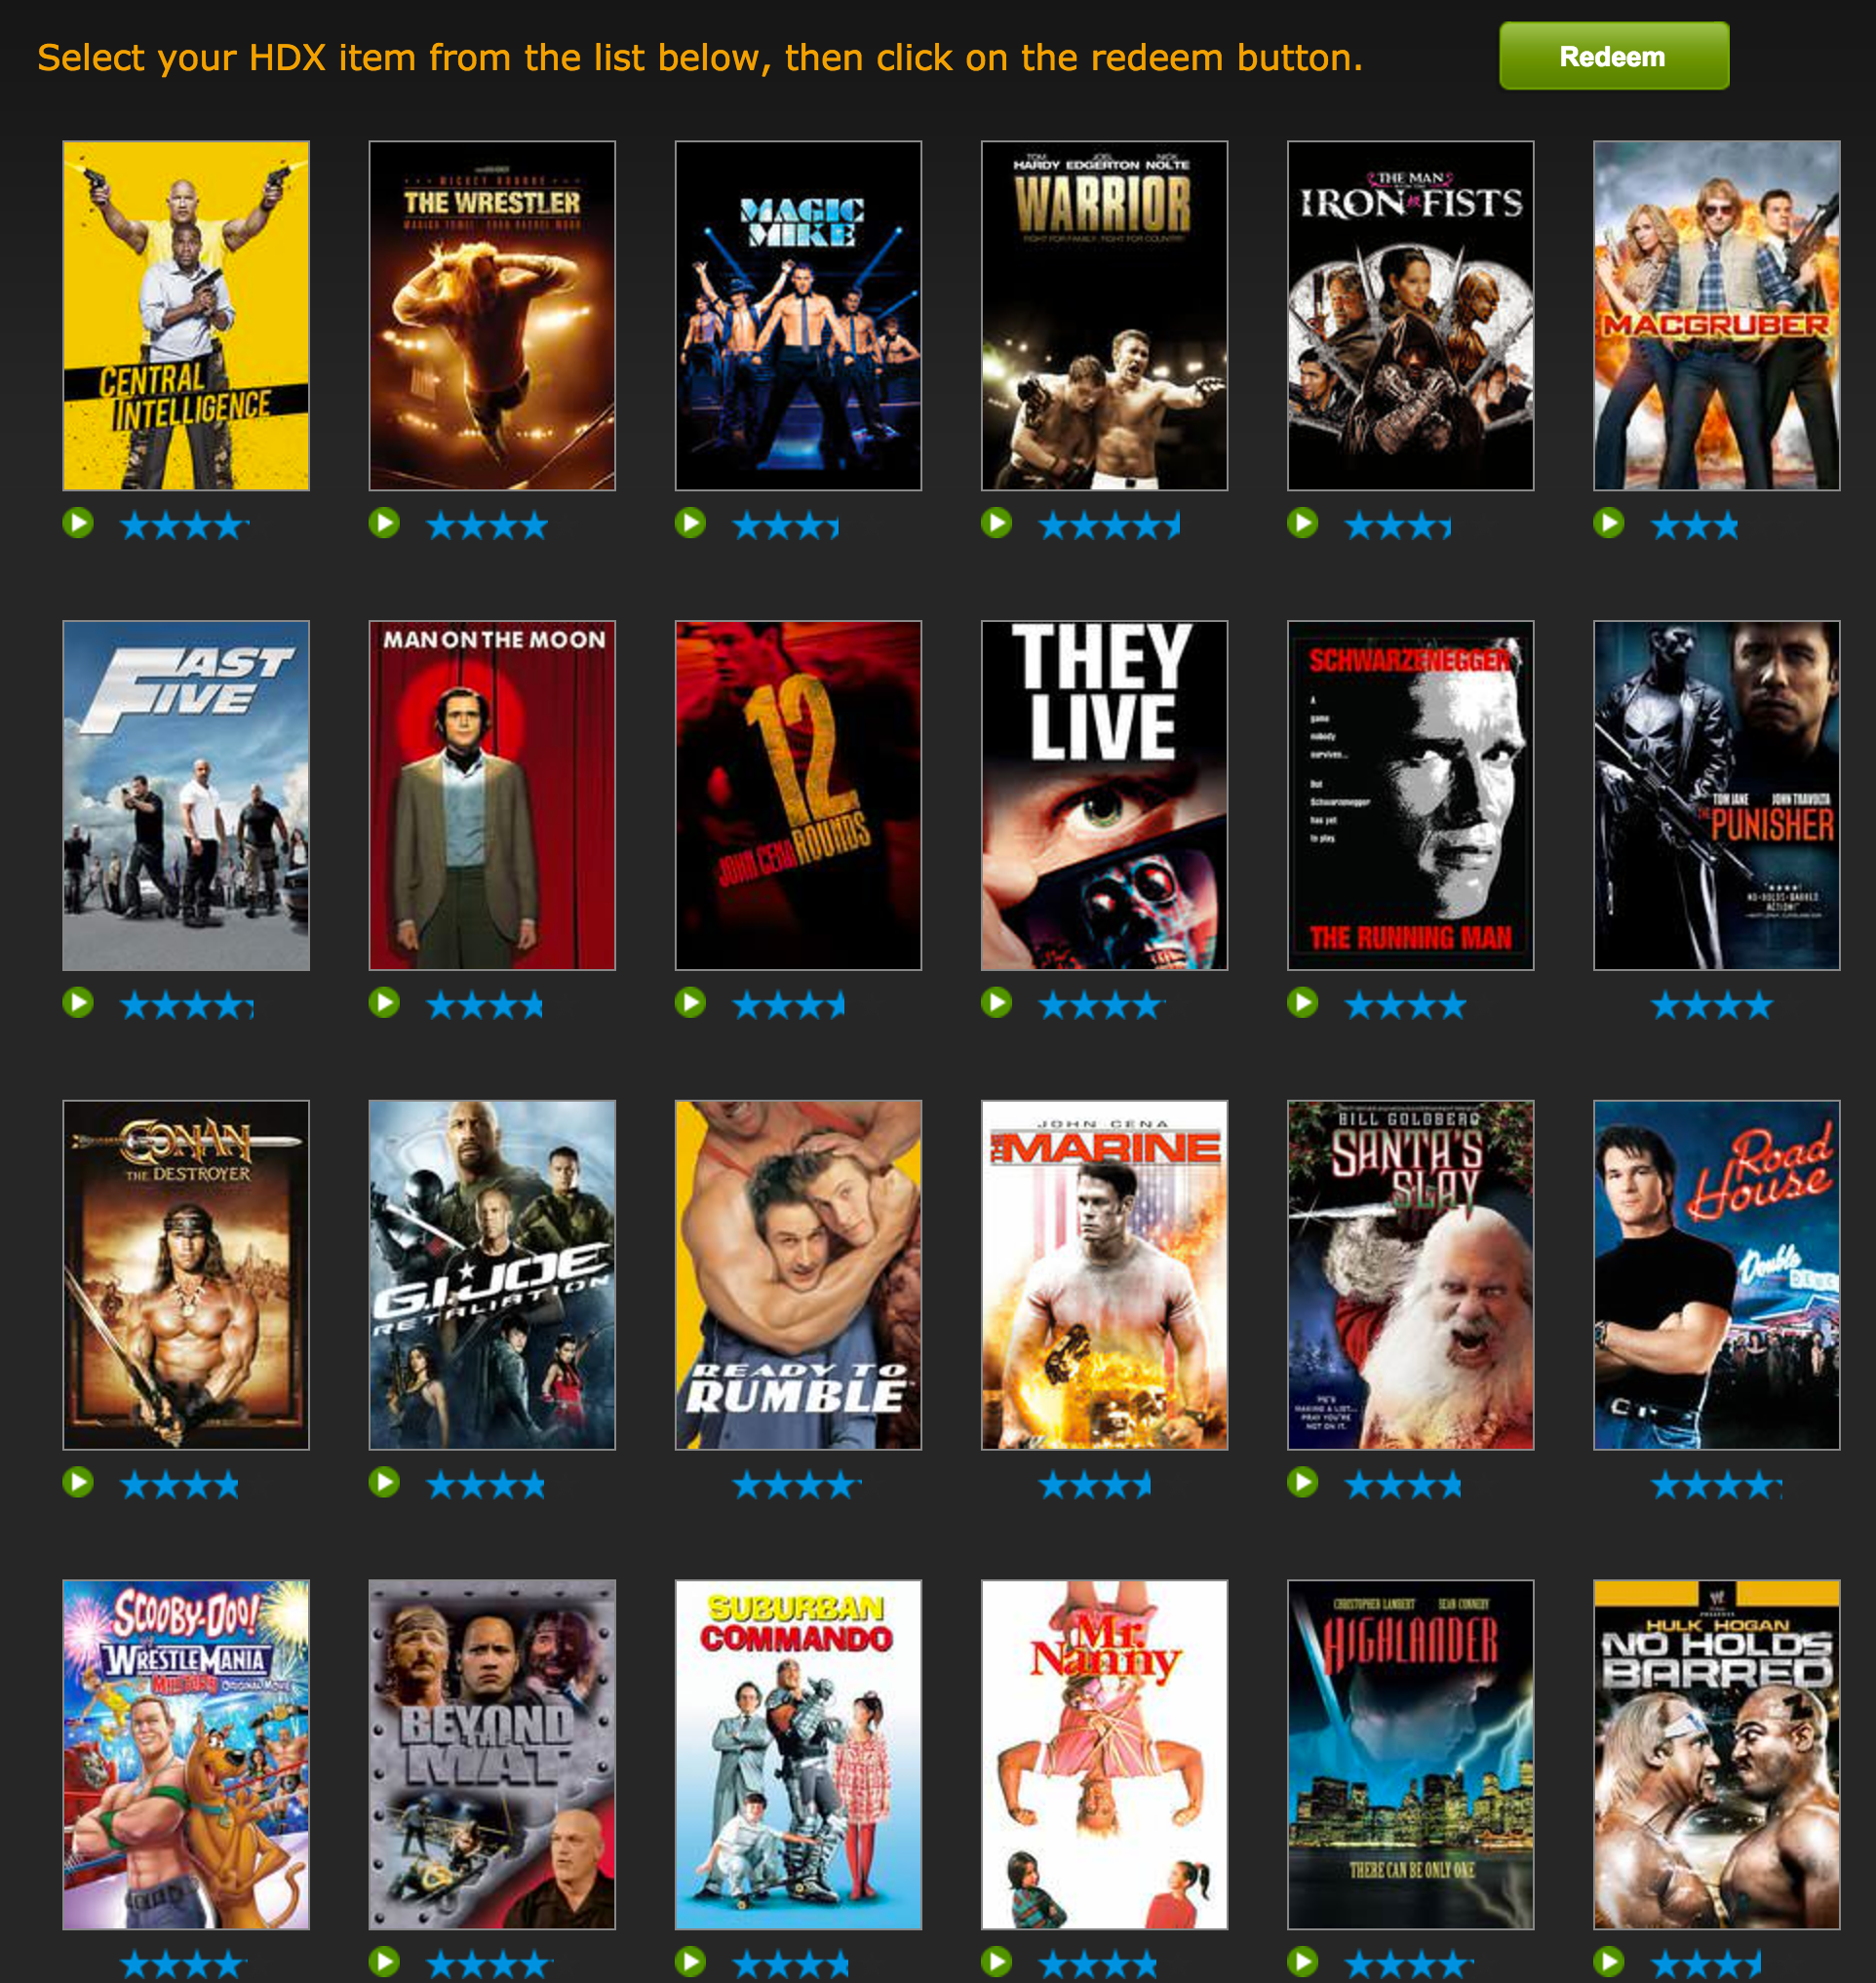 VUDU offers one free movie rental: Central Intelligence